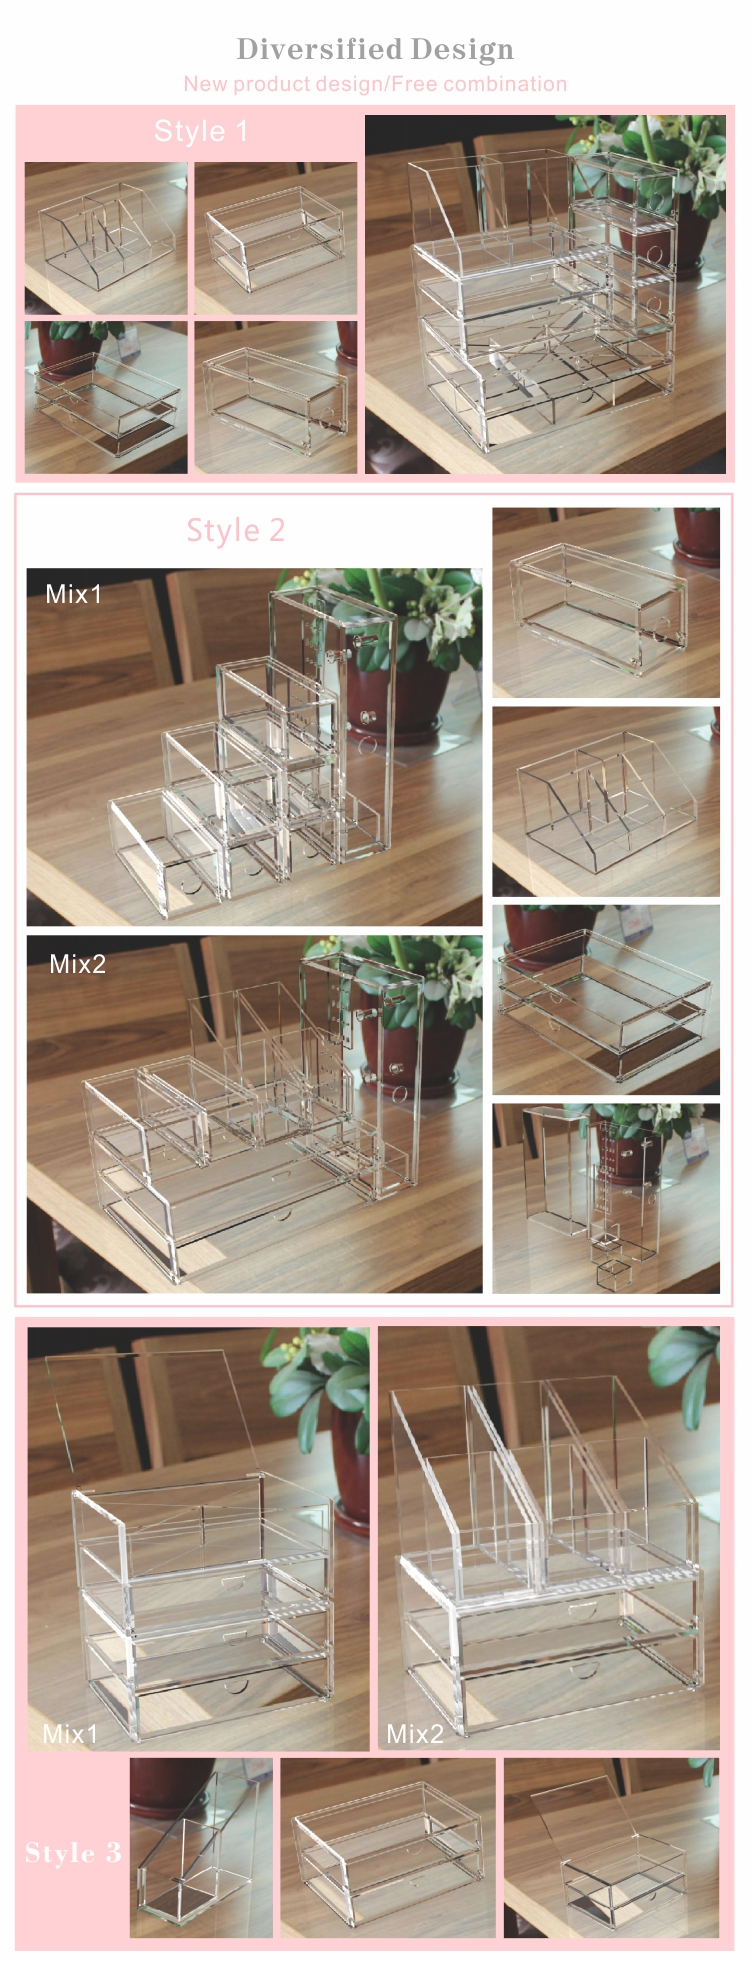 Acrylic cosmetic drawer organizer